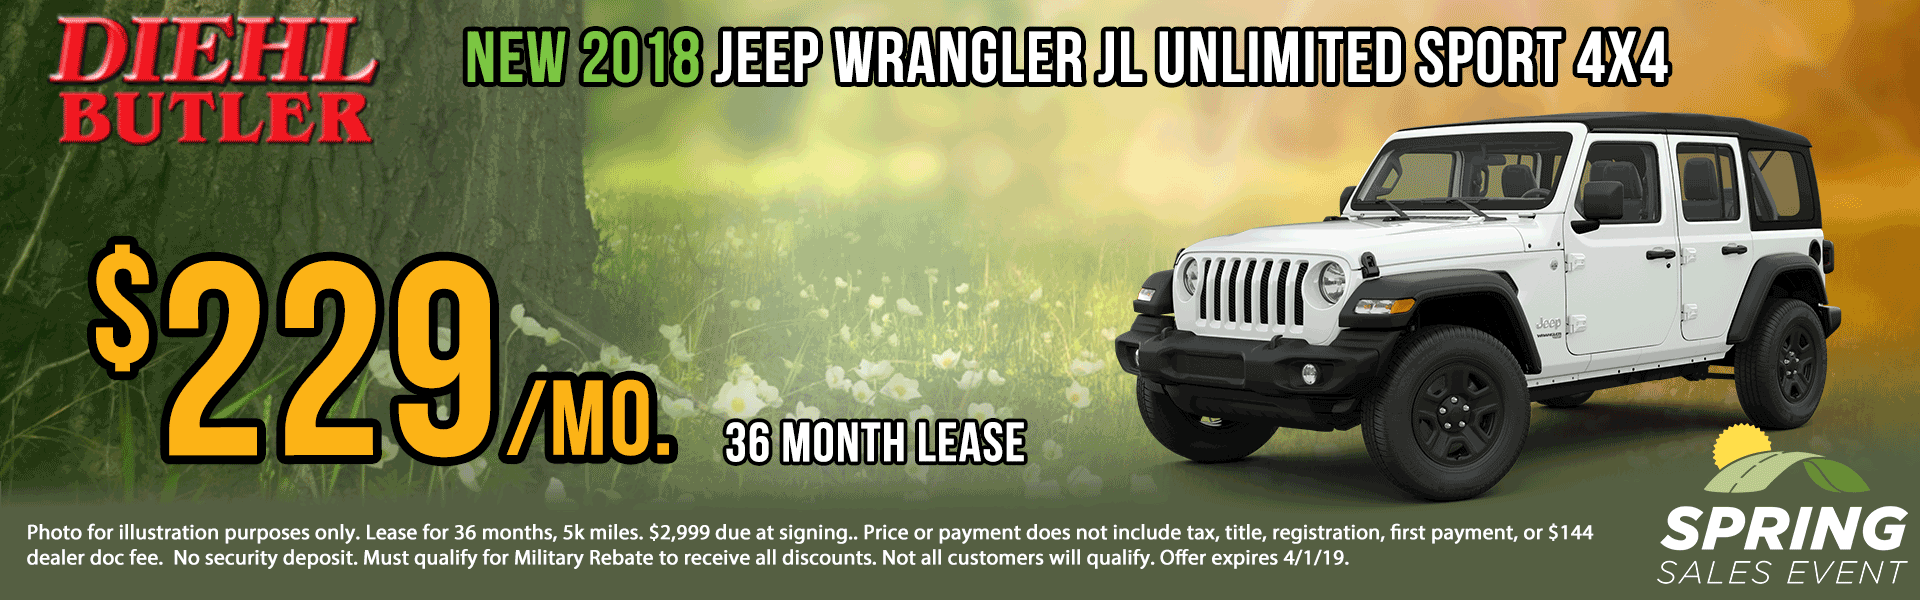 Diehl of Butler. Chrysler Jeep Dodge Ram Toyota Volkswagen. Butler, PA. New and Used sales, service, body shop, reconditioning, parts and accessories. NEW 2018 JEEP WRANGLER UNLIMITED SPORT S 4X4